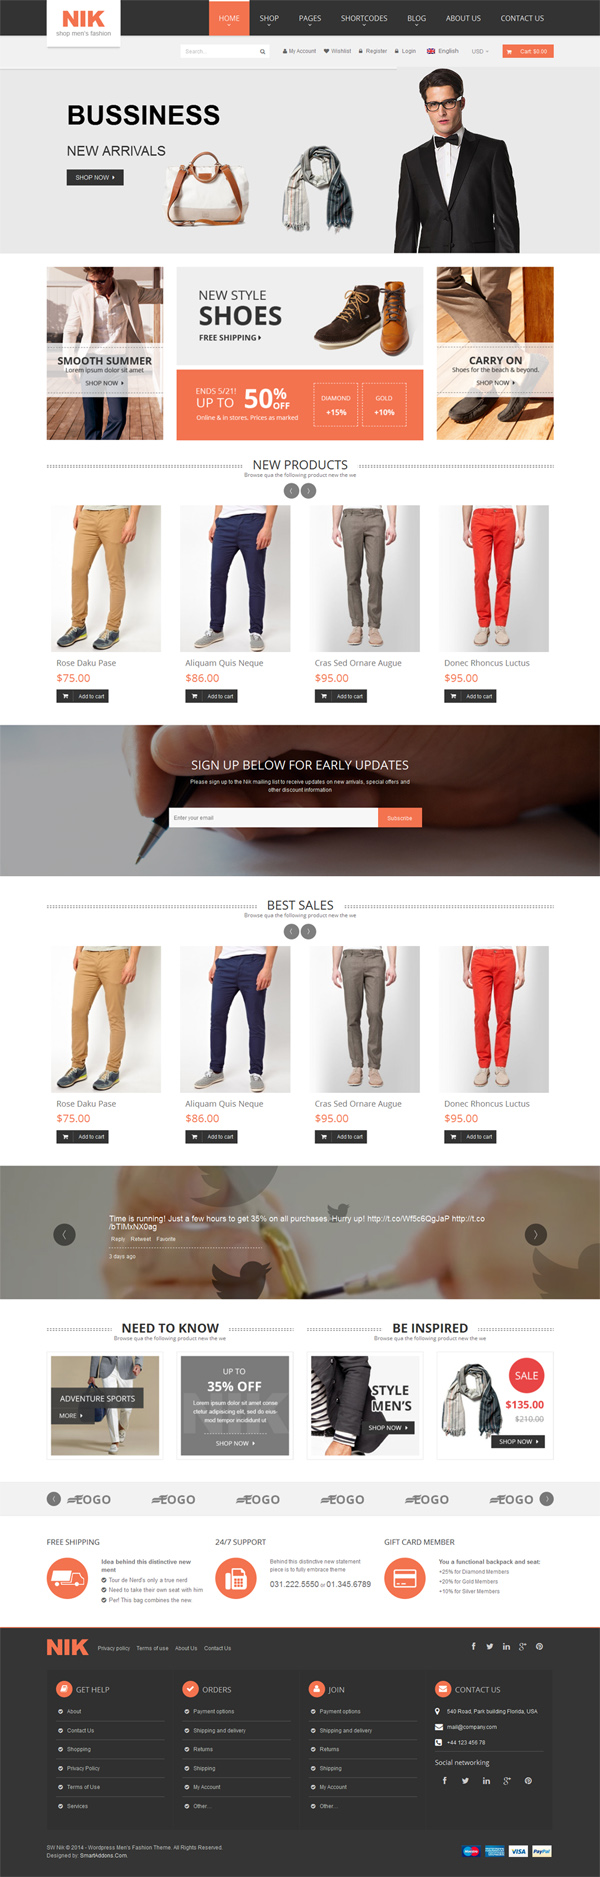 Nik - Responsive WordPress Theme for Fashion Store